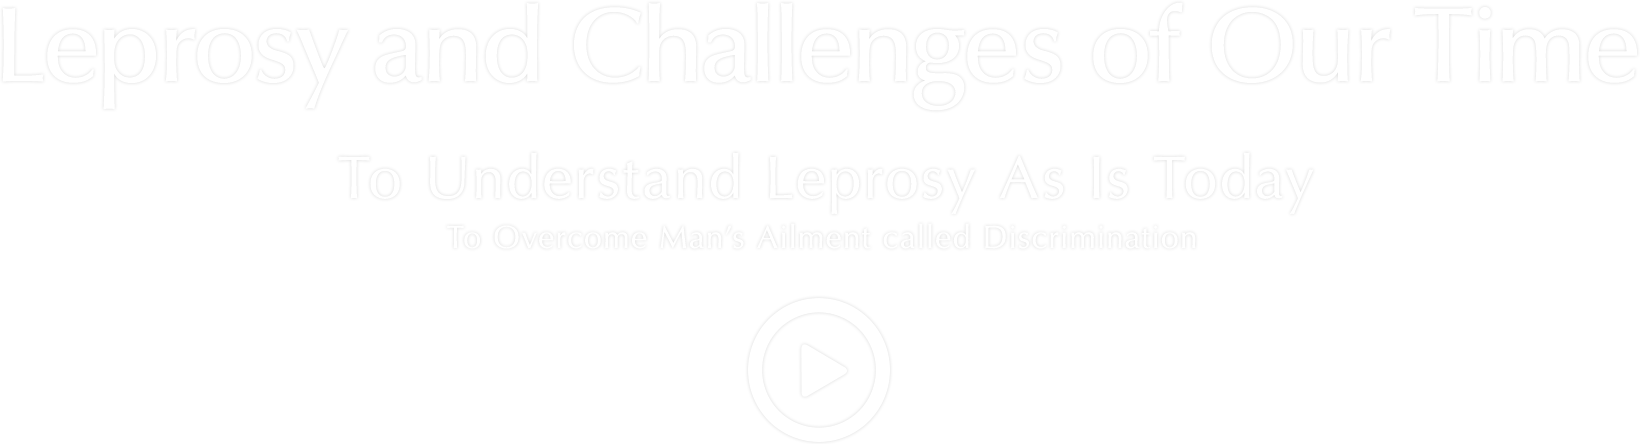 Leprosy and Challenges of Our Time ハンセン病の「いま」を知る 人類の抱える「差別」という病を克服するために